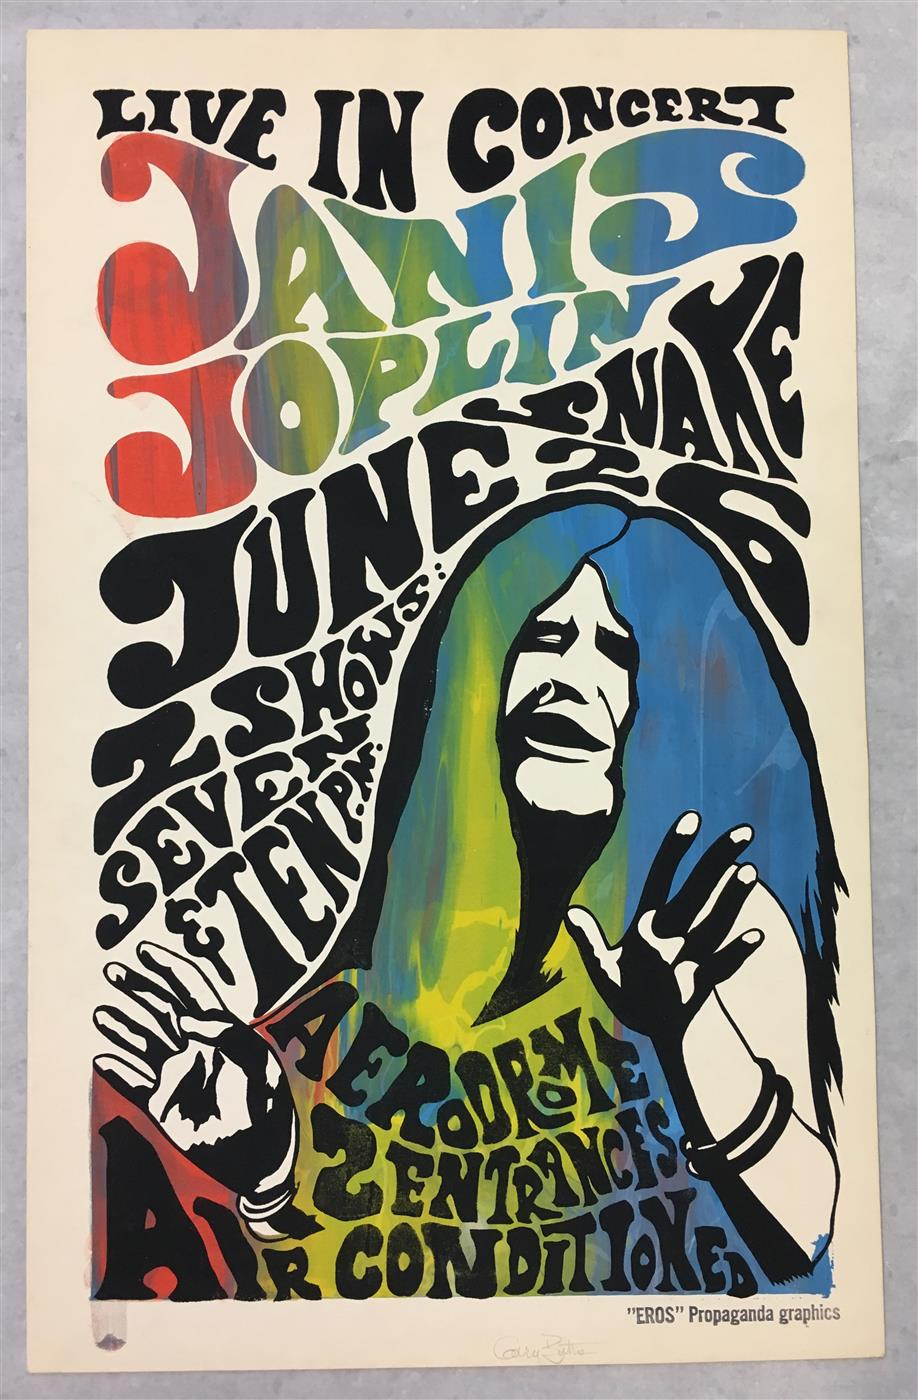 Rare Rock Concert Posters Ready To Roll At Weiss Auctions Dec 17 18